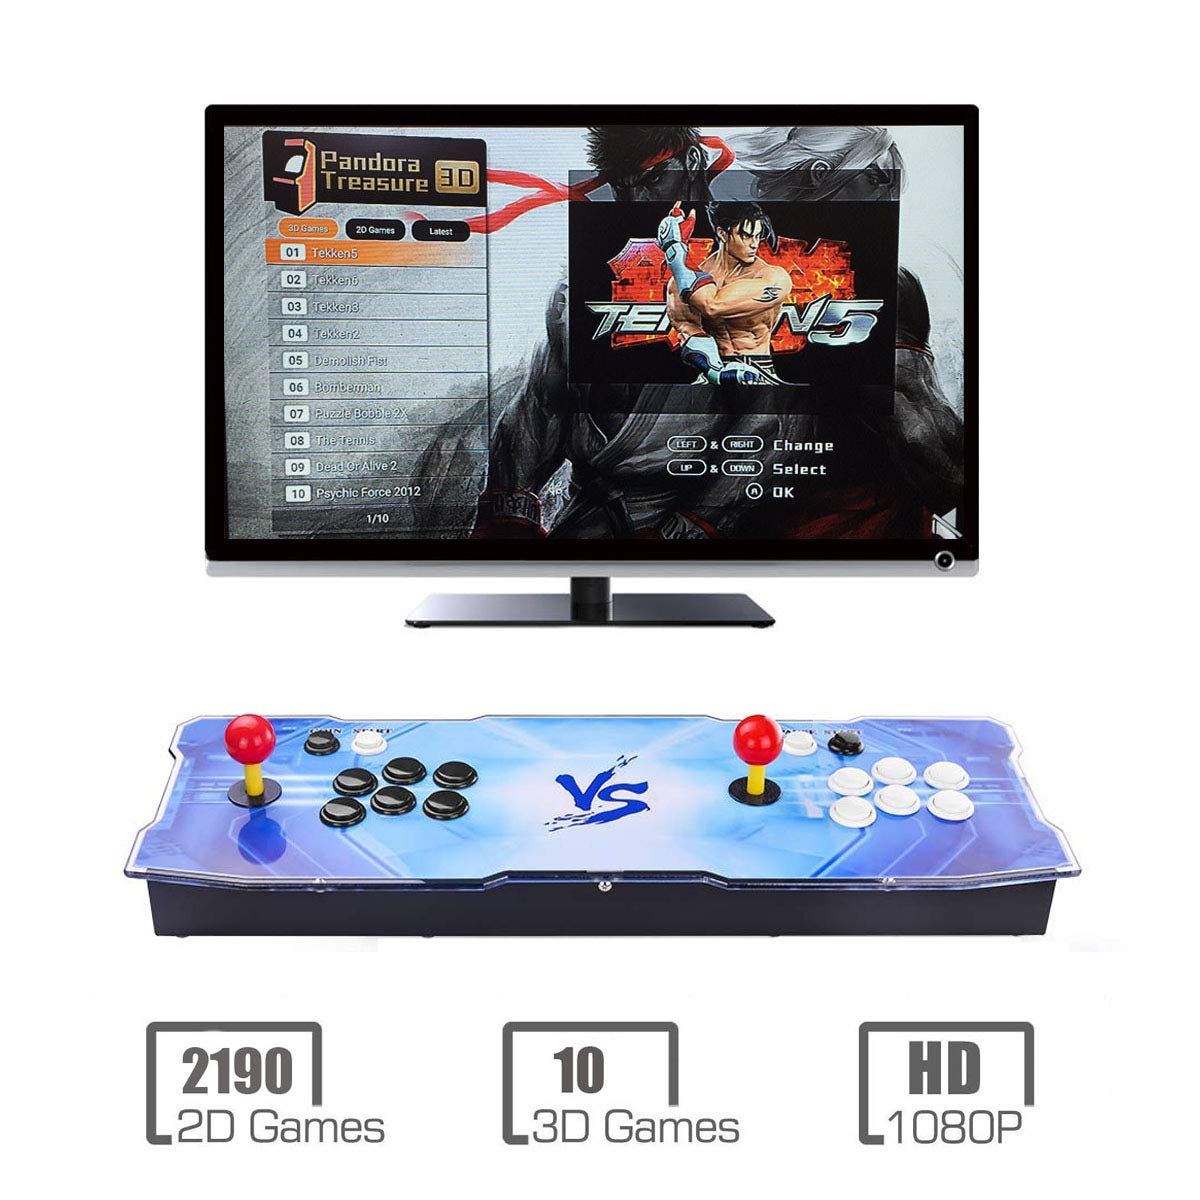 Pandora Treasure 3D Arcade Console | 2200 Games Pre-loaded | Support 3D Games | Add More Games | Full HD (1920x1080) Video | Support 4 Players | 2 Player Game Controls | HDMI/VGA/USB/AUX Audio Output